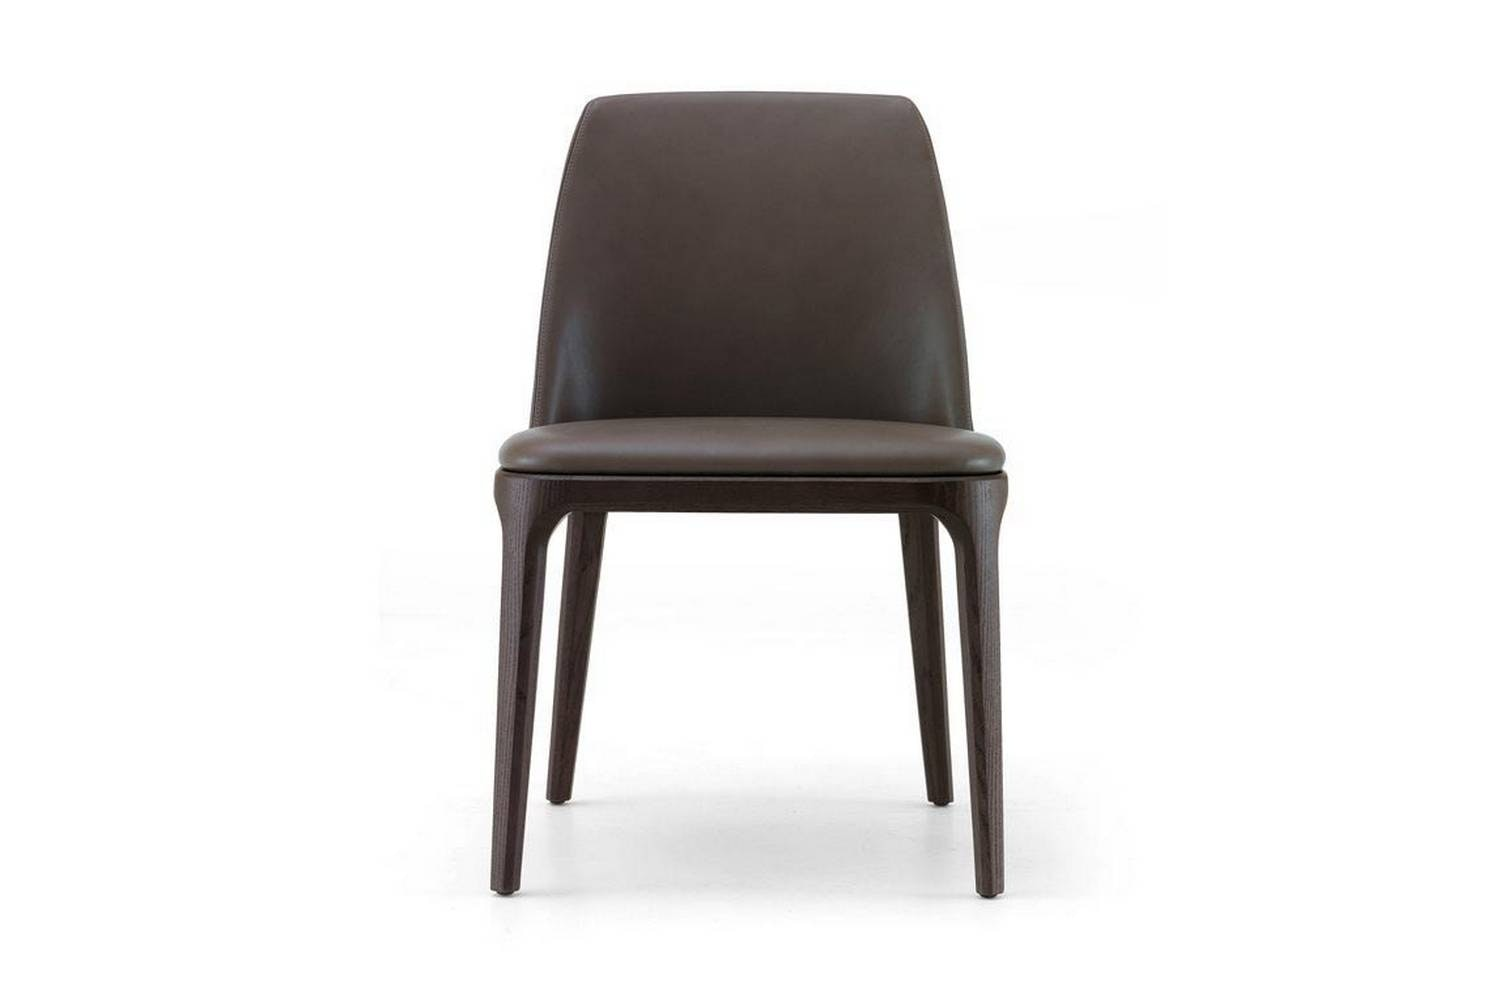 Grace Chair by Emmanuel Gallina for Poliform